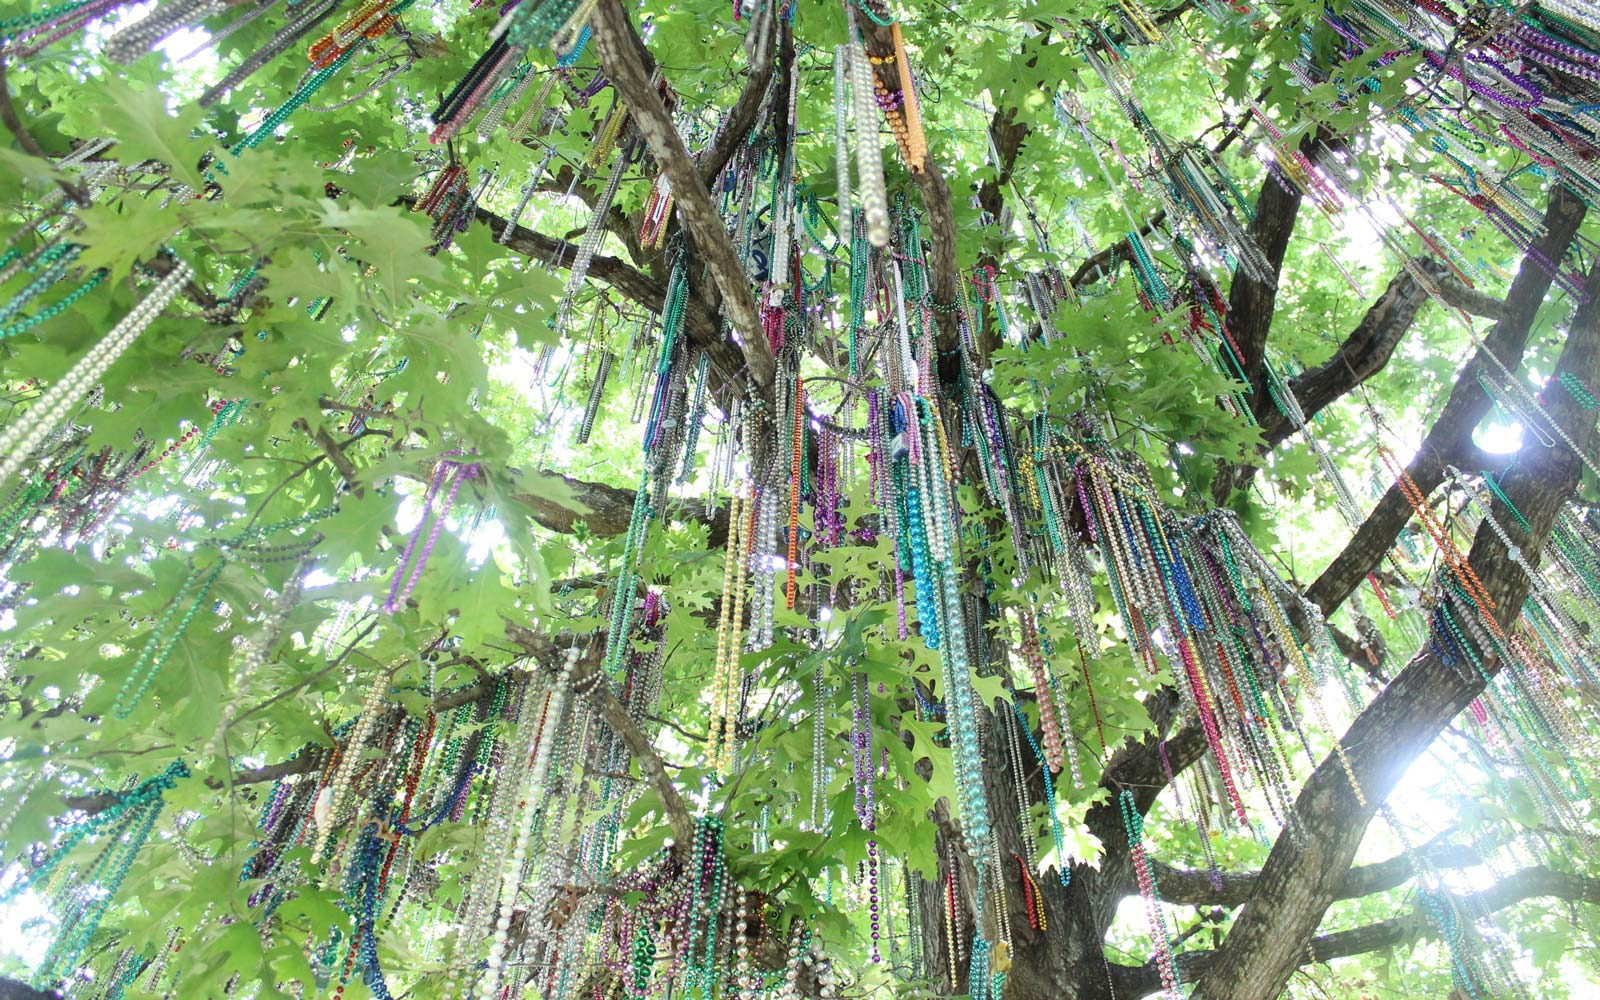 An Iconic Oak Tree Covered in Mardi Gras Beads Is Being Removed From Tulane University's Campus